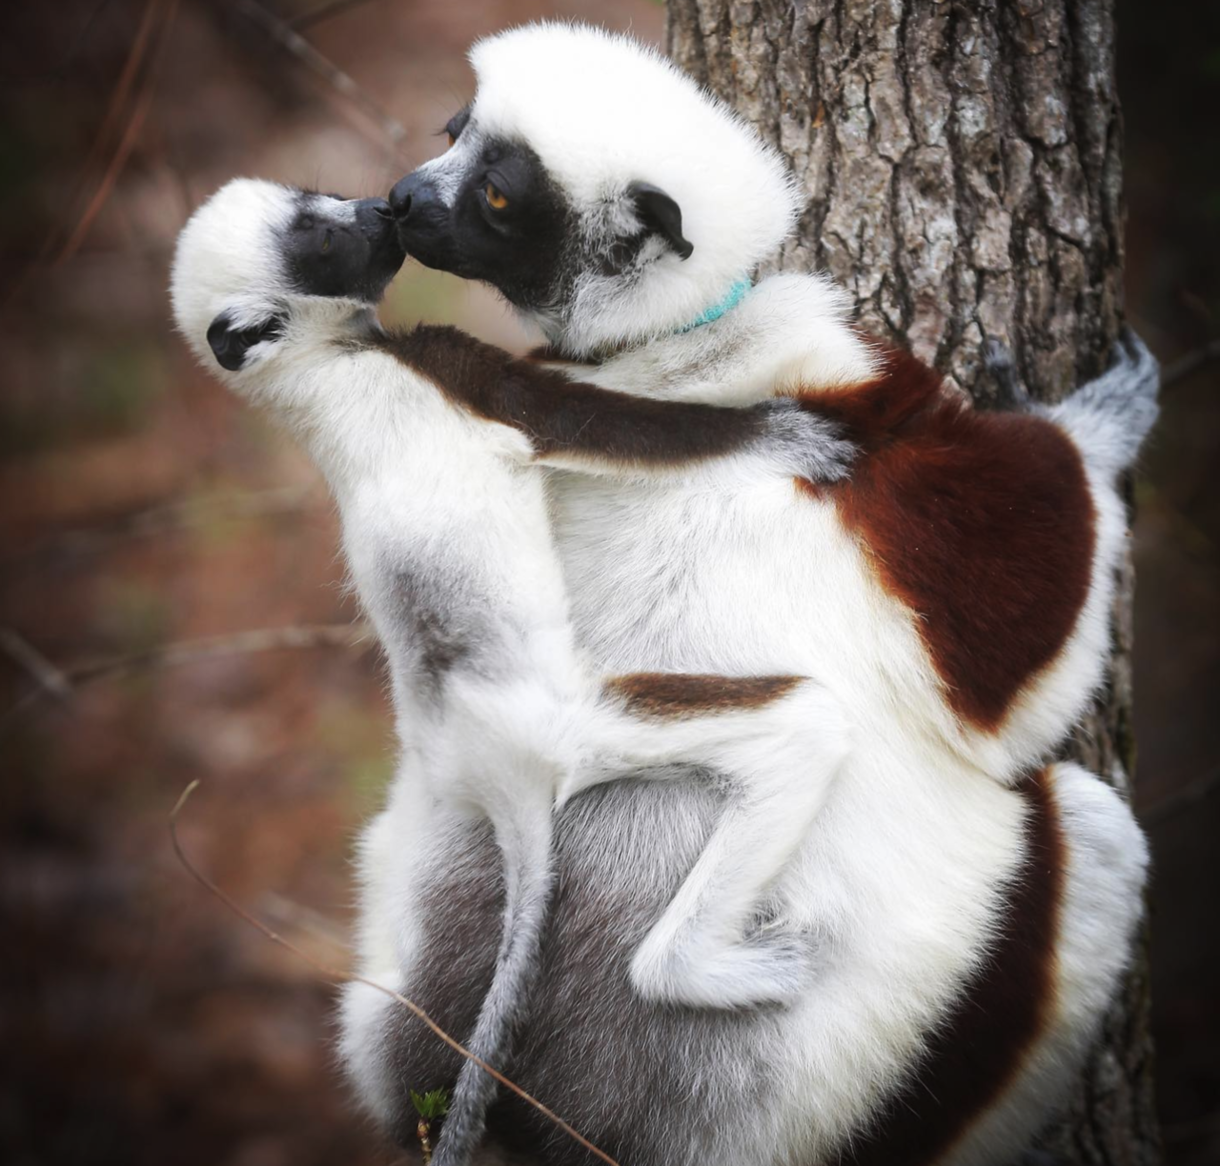 An infant sifaka rubs his mother's nose while clinging to her back